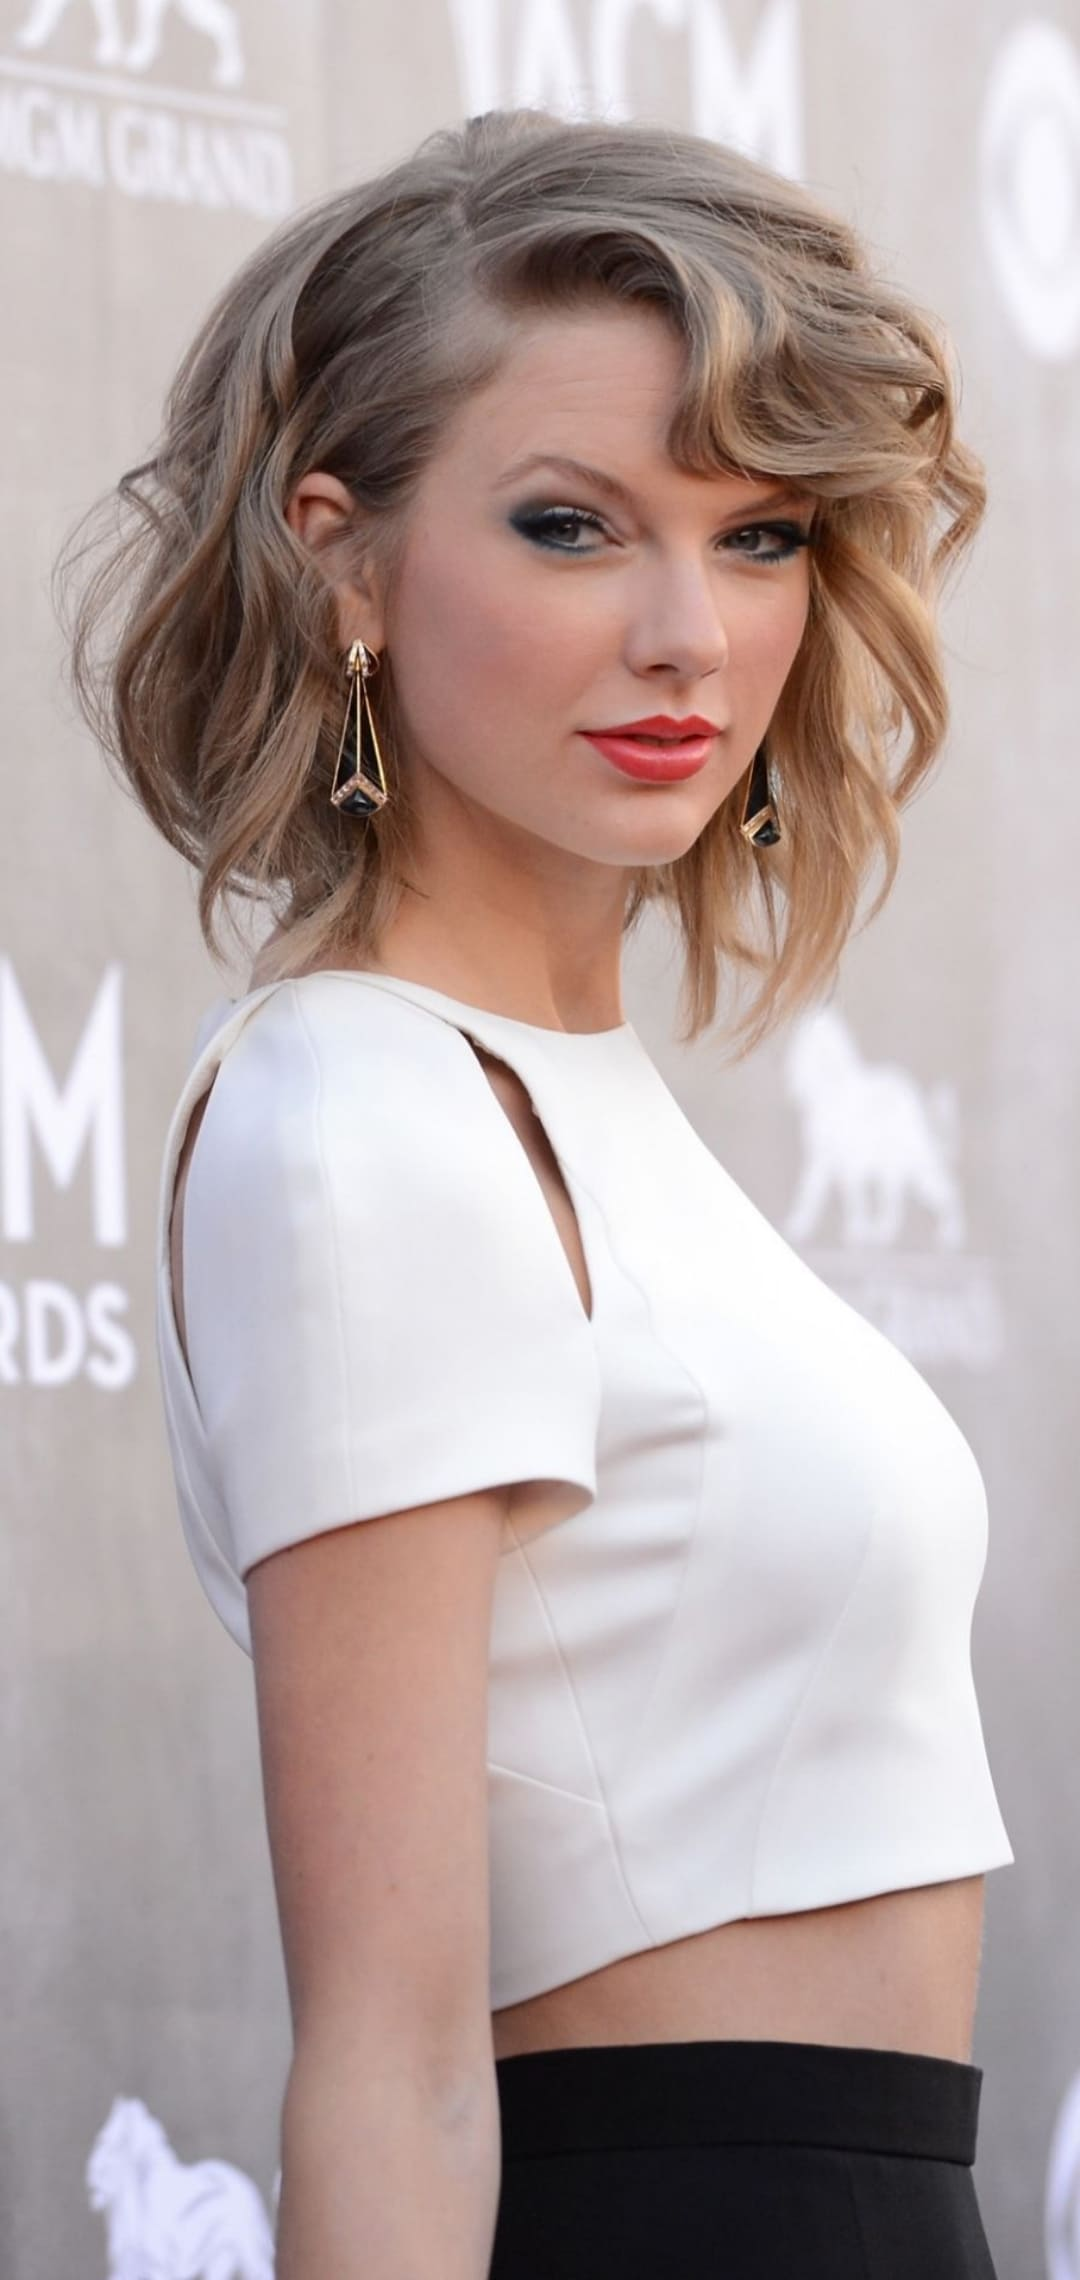 taylor swift hd wallpapers wish qatar